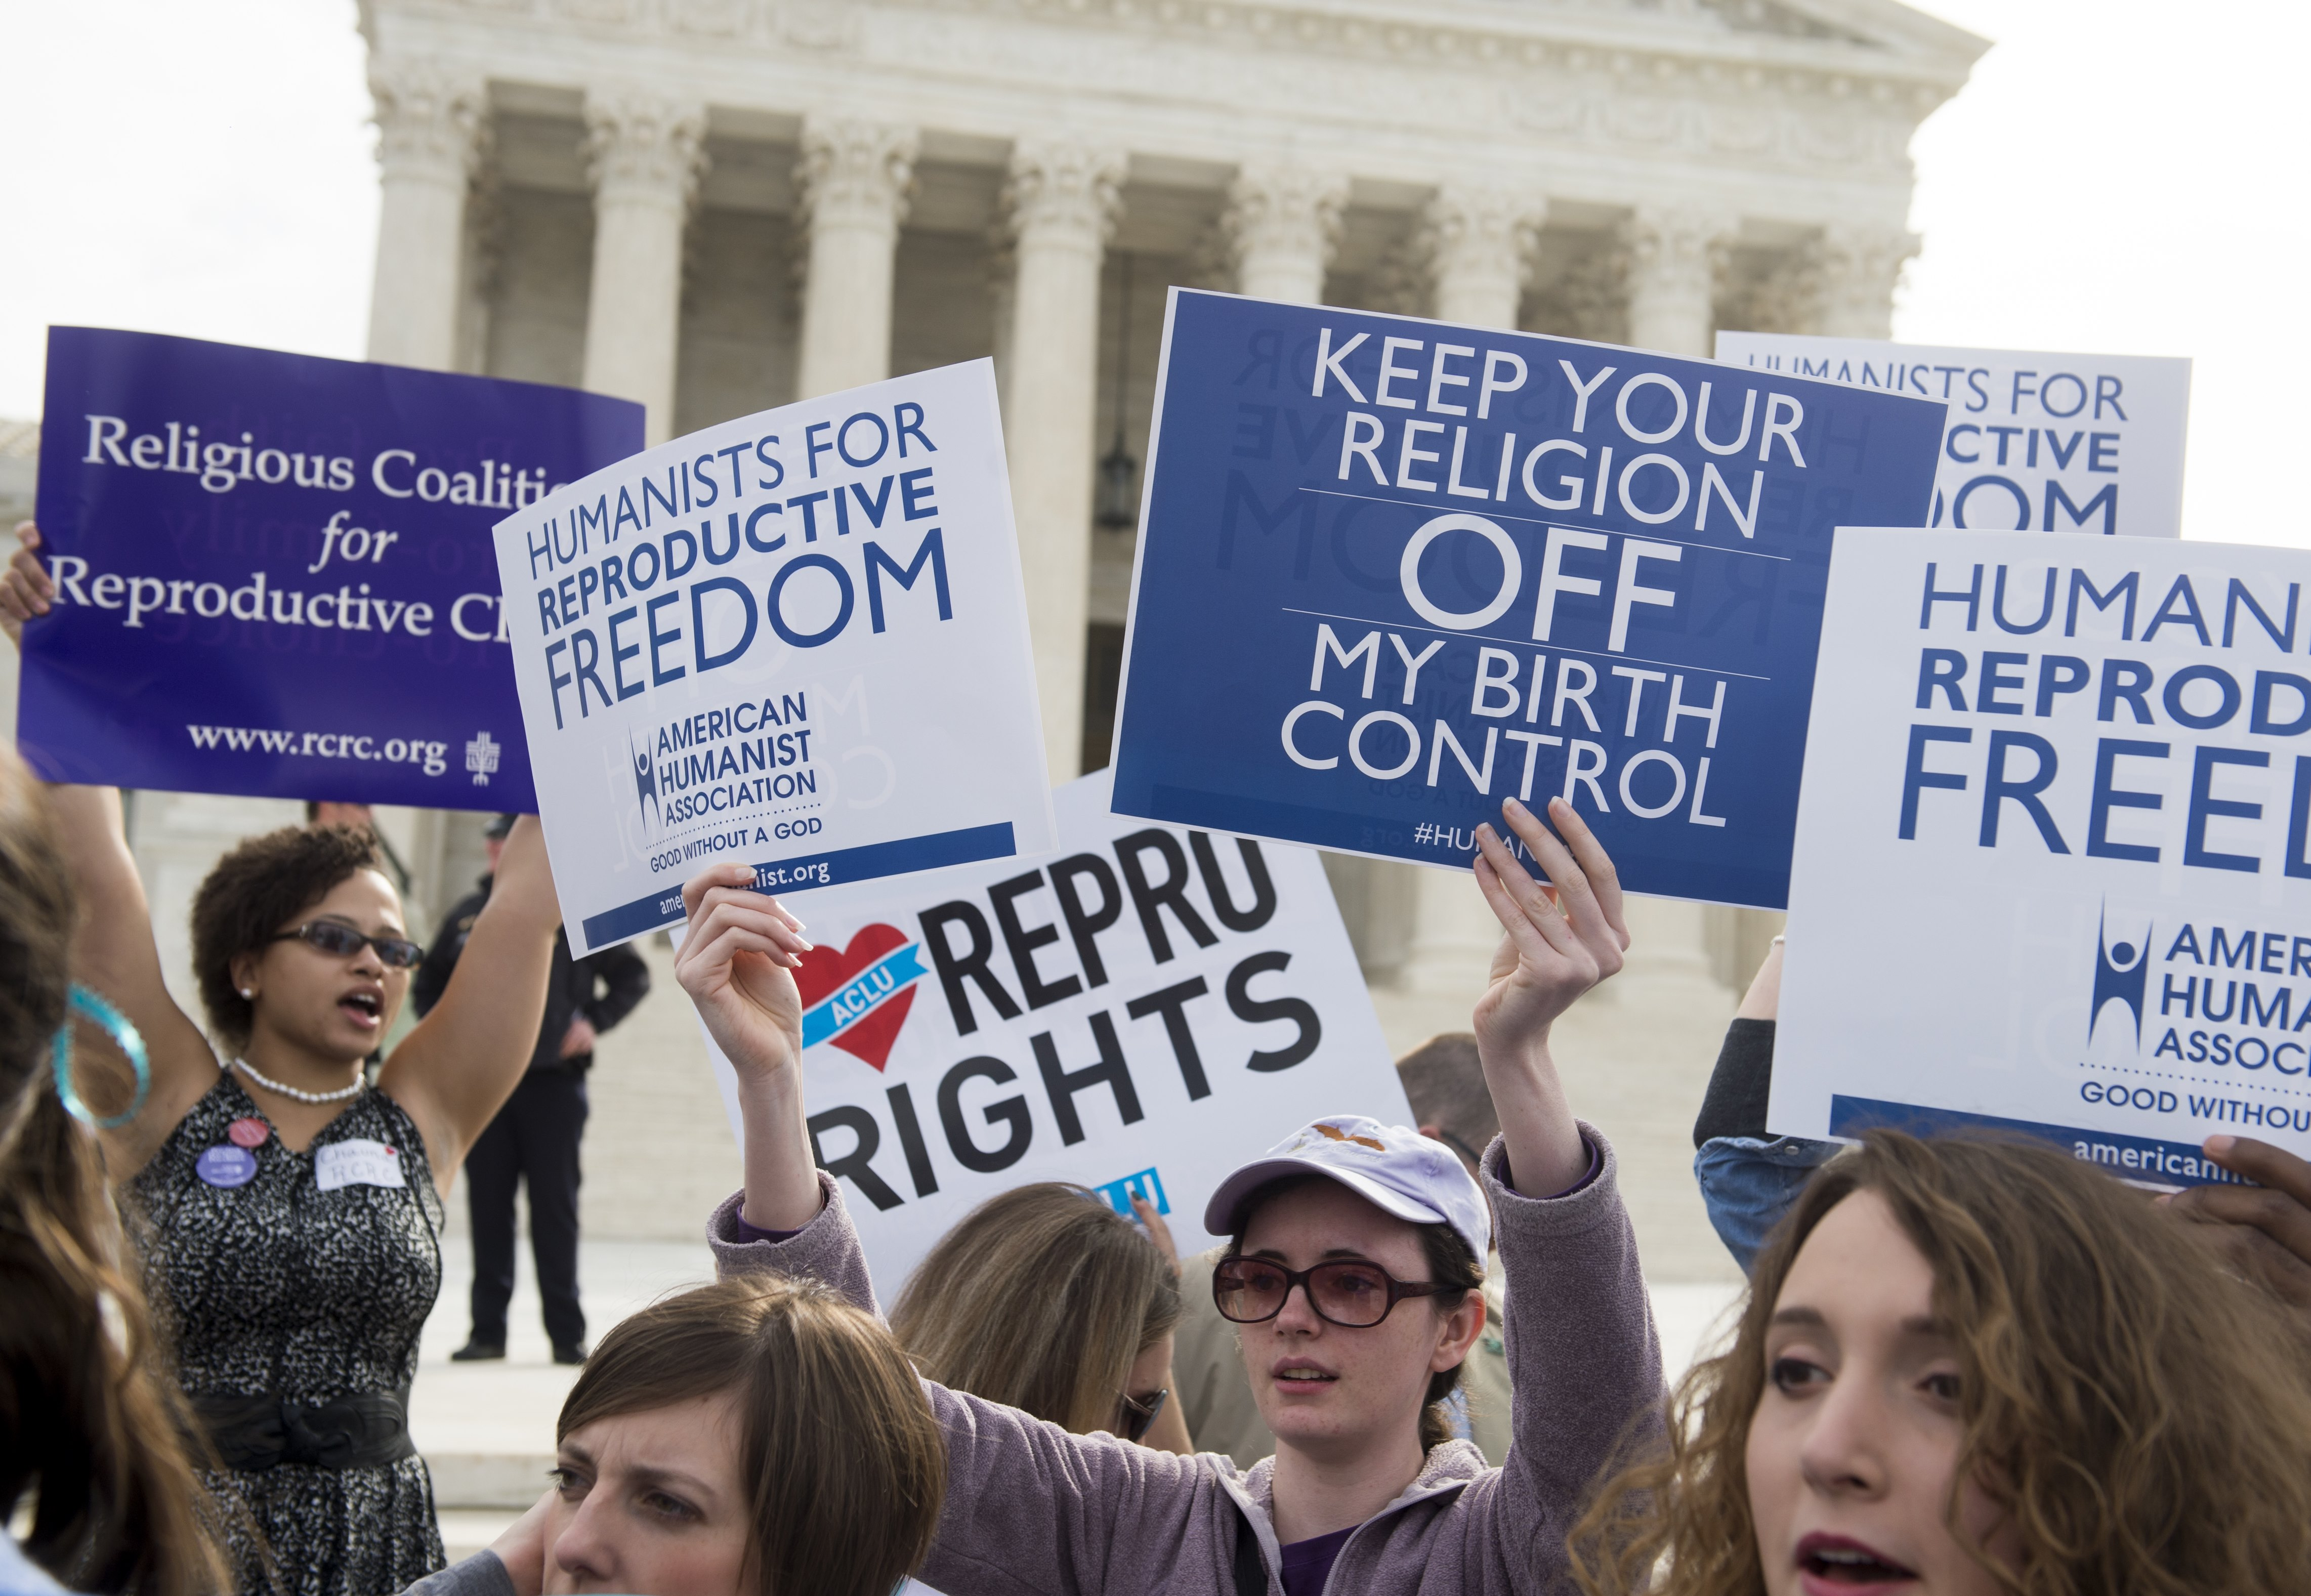 Supporters of women's health rally outside the Supreme Court in Washington, DC, March 23, 2016, as the Court hears oral arguments in 7 cases dealing with religious organizations that want to ban contraceptives from their health insurance policies on religious grounds. / AFP / SAUL LOEB